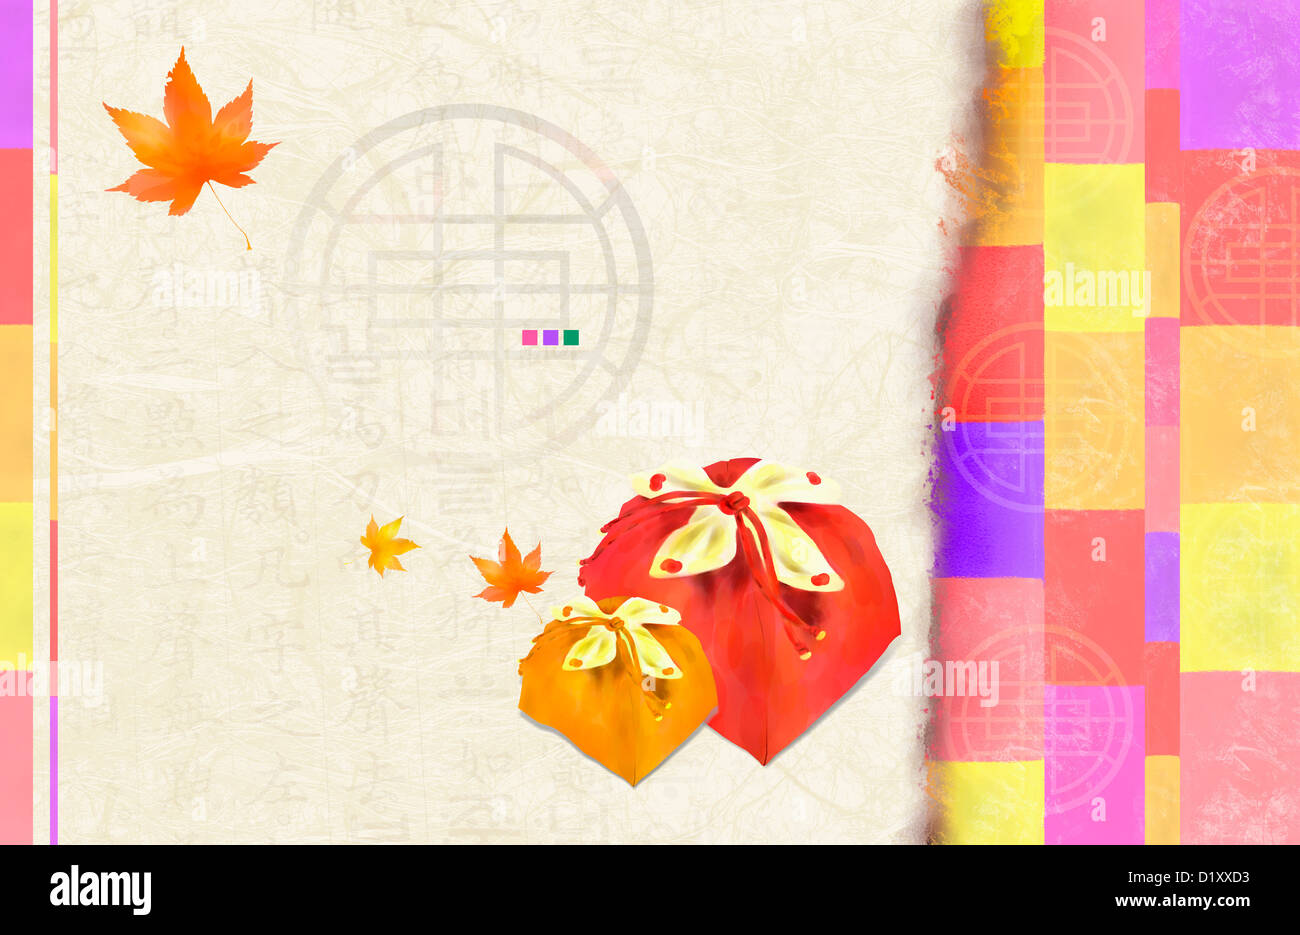 Ppt template illustration of korean traditional design stock photo ppt template illustration of korean traditional design toneelgroepblik